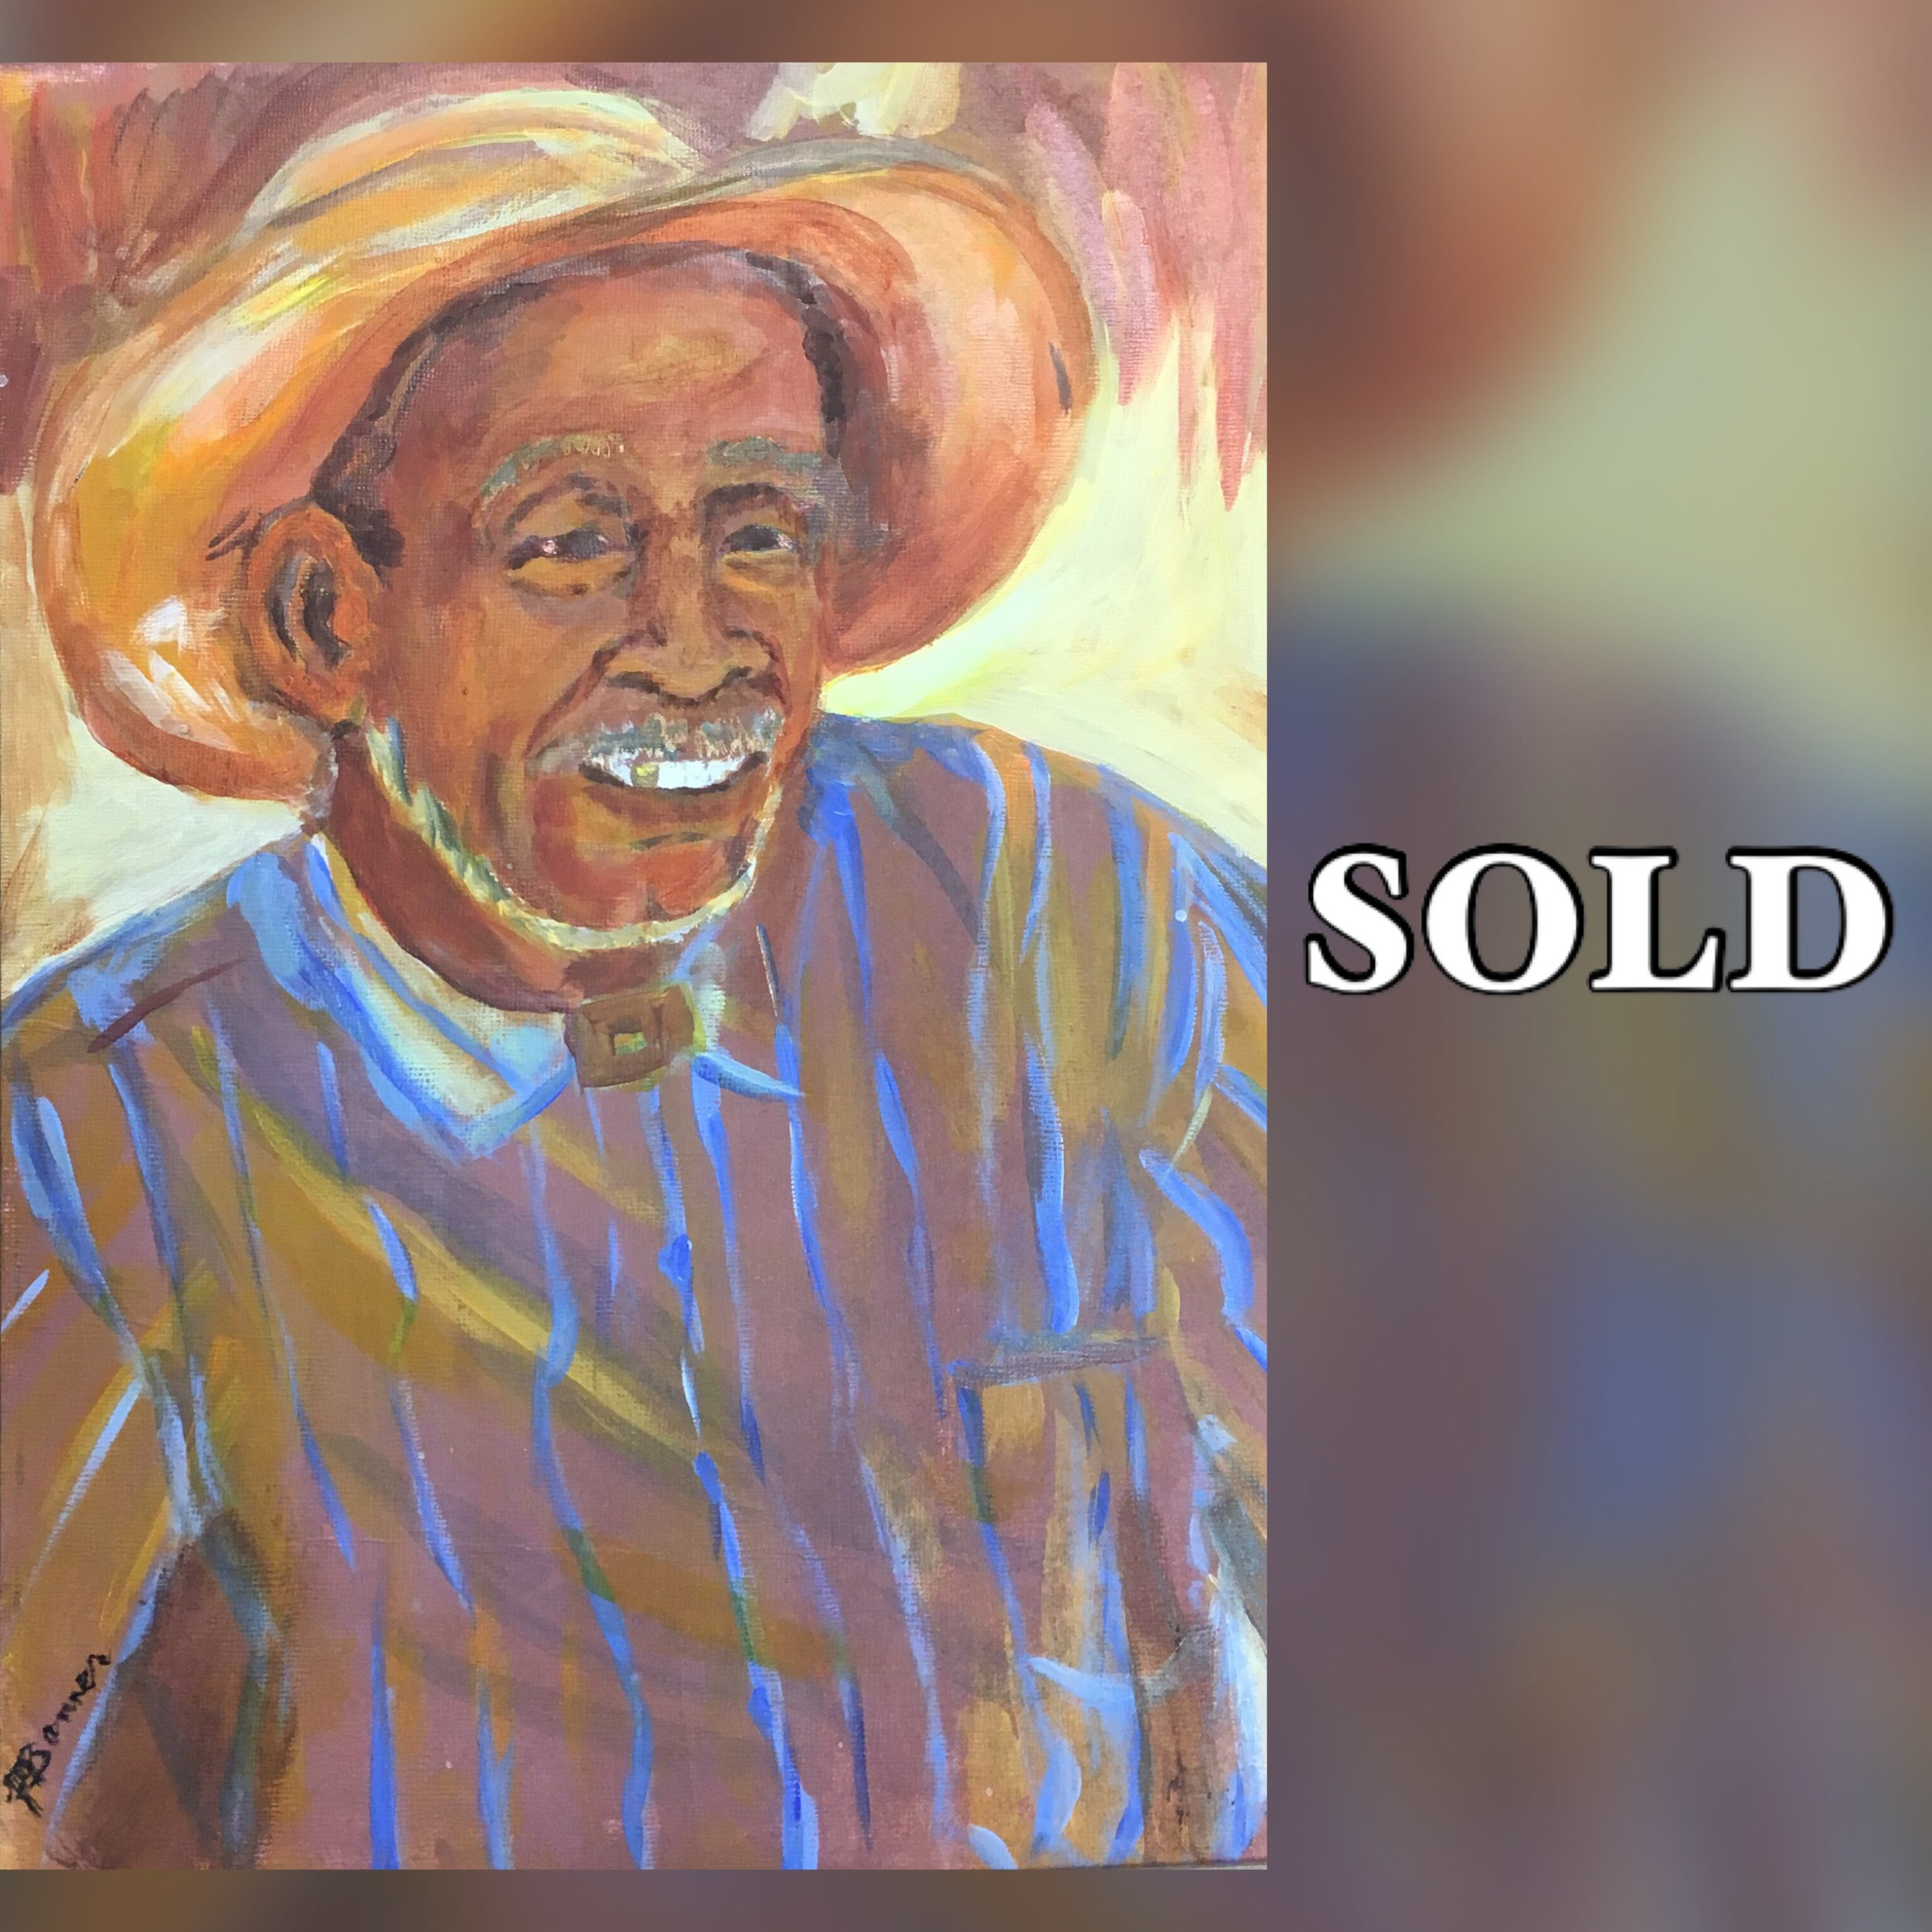 Man with Gold Tooth Sold.JPG